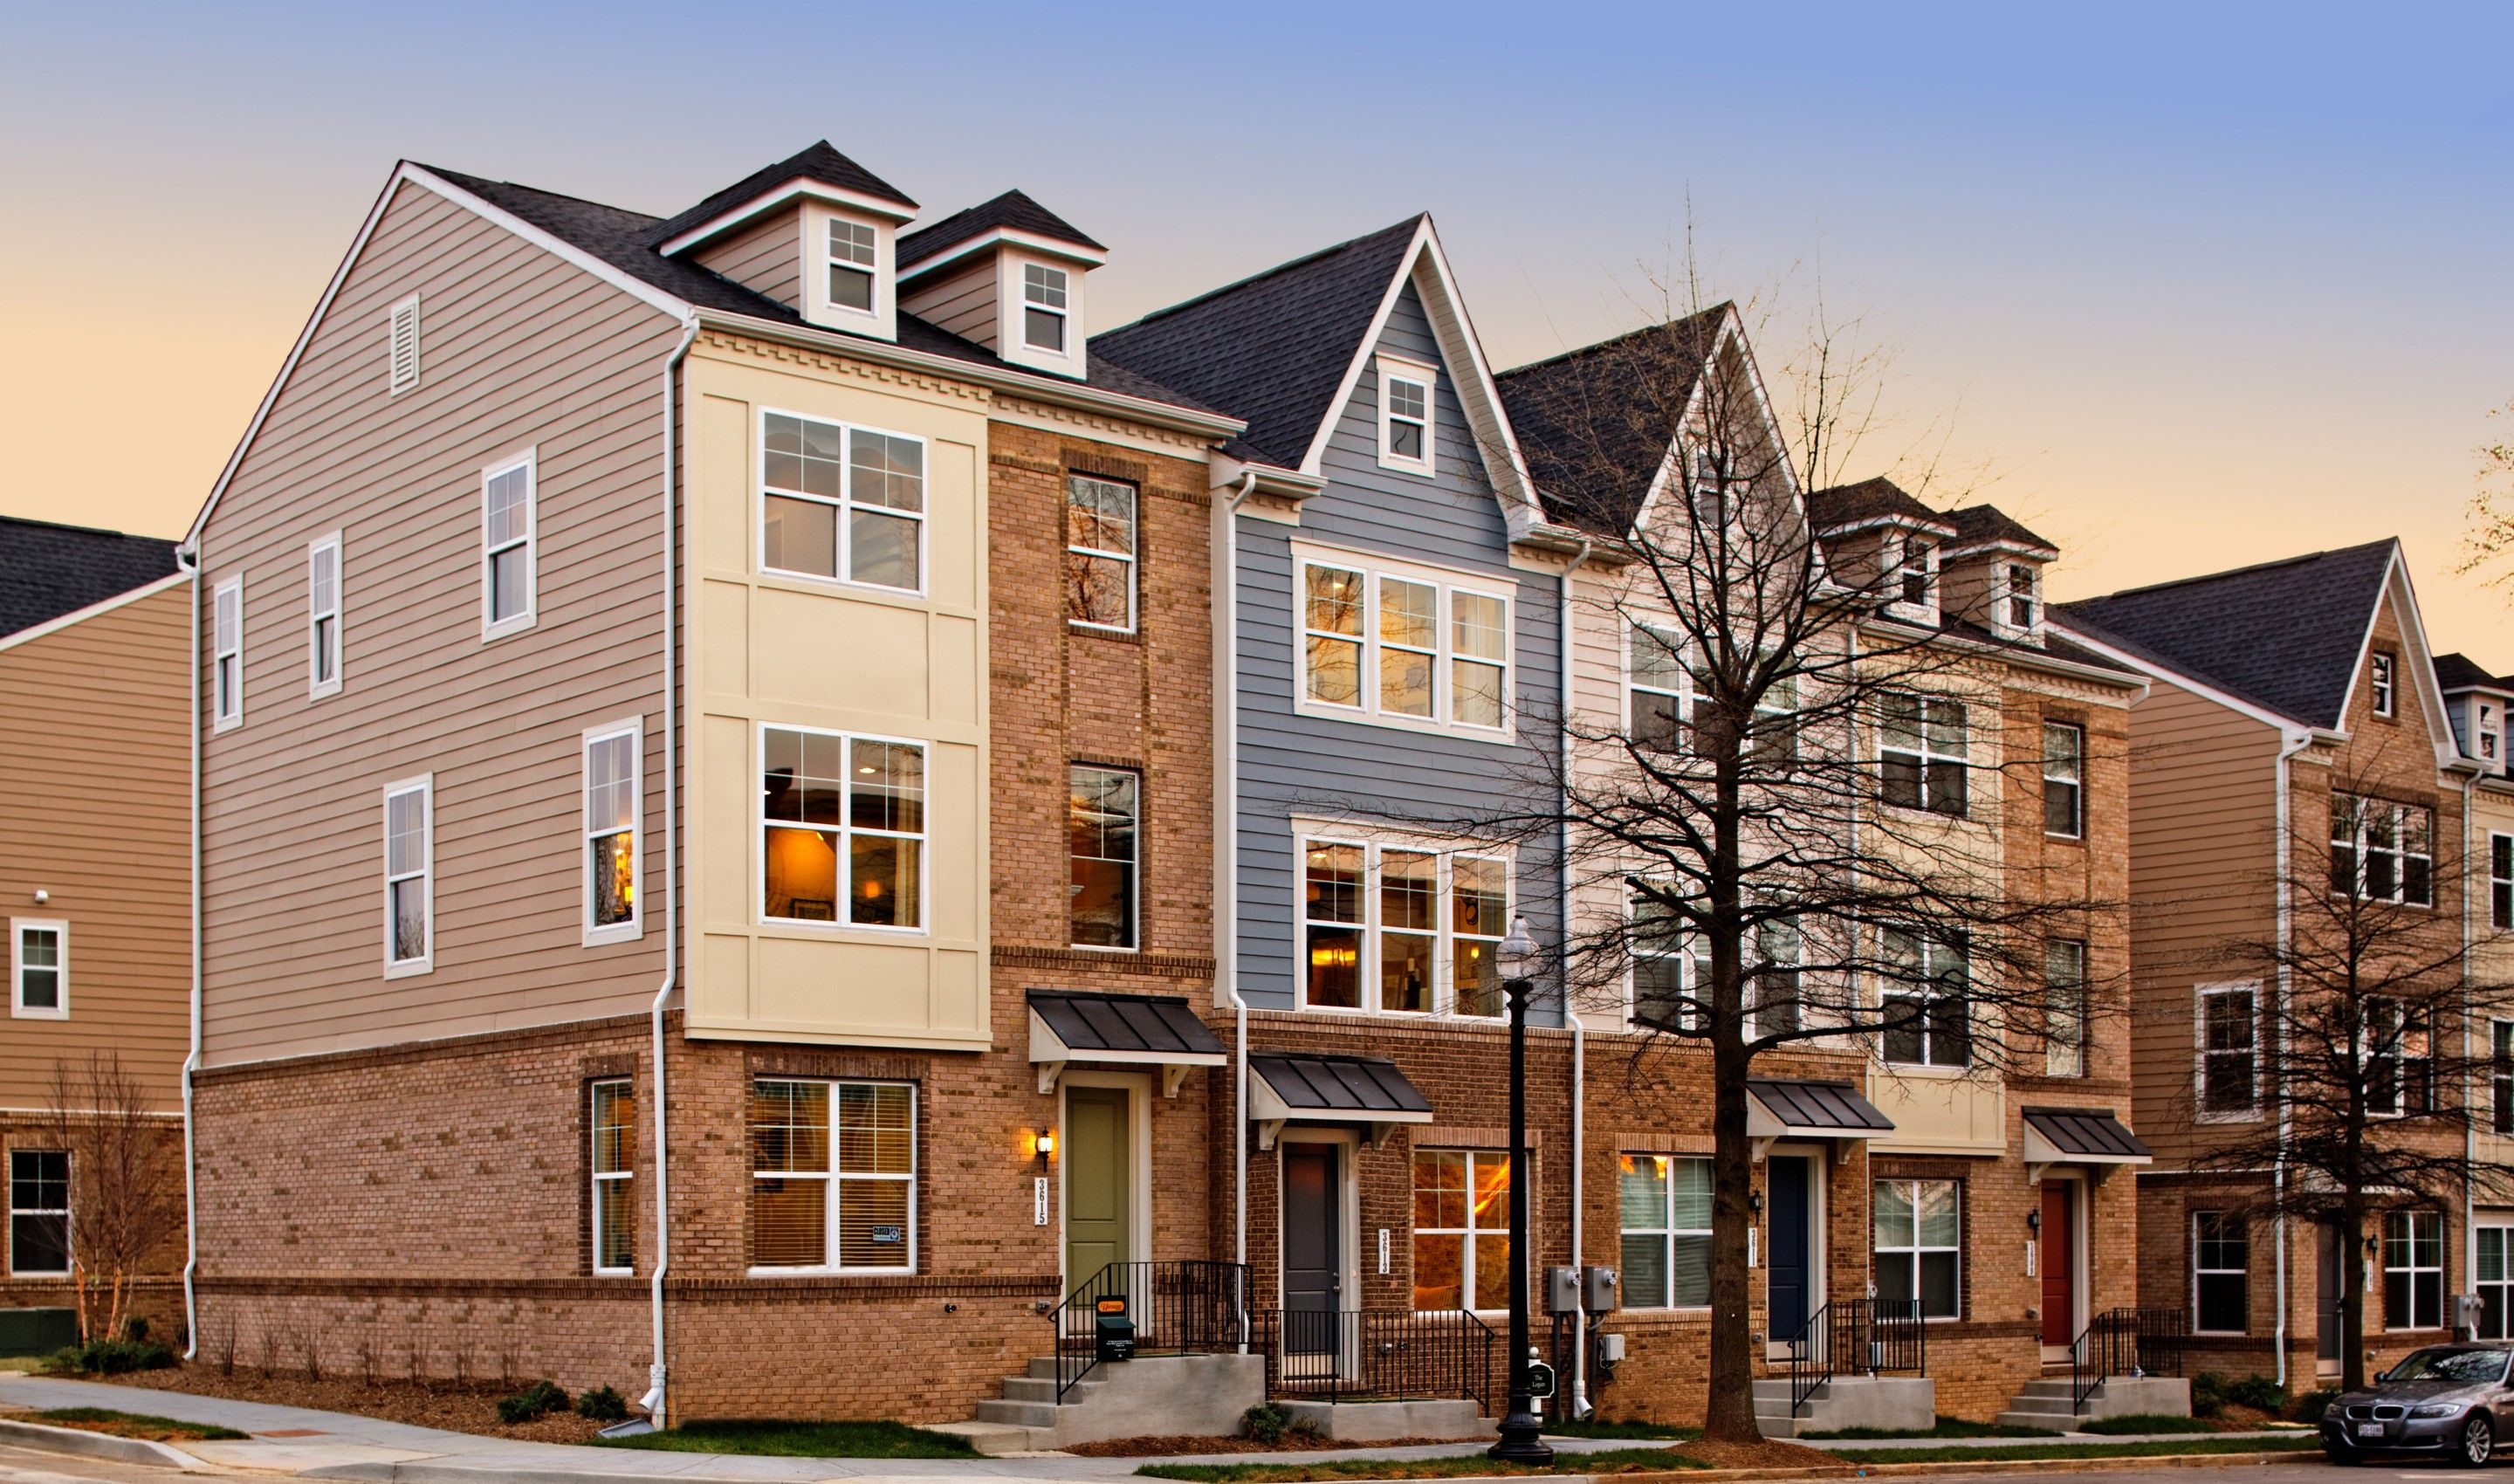 Multi Family for Sale at Parker Ii 3615 Grant Place Ne Washington, District Of Columbia 20019 United States